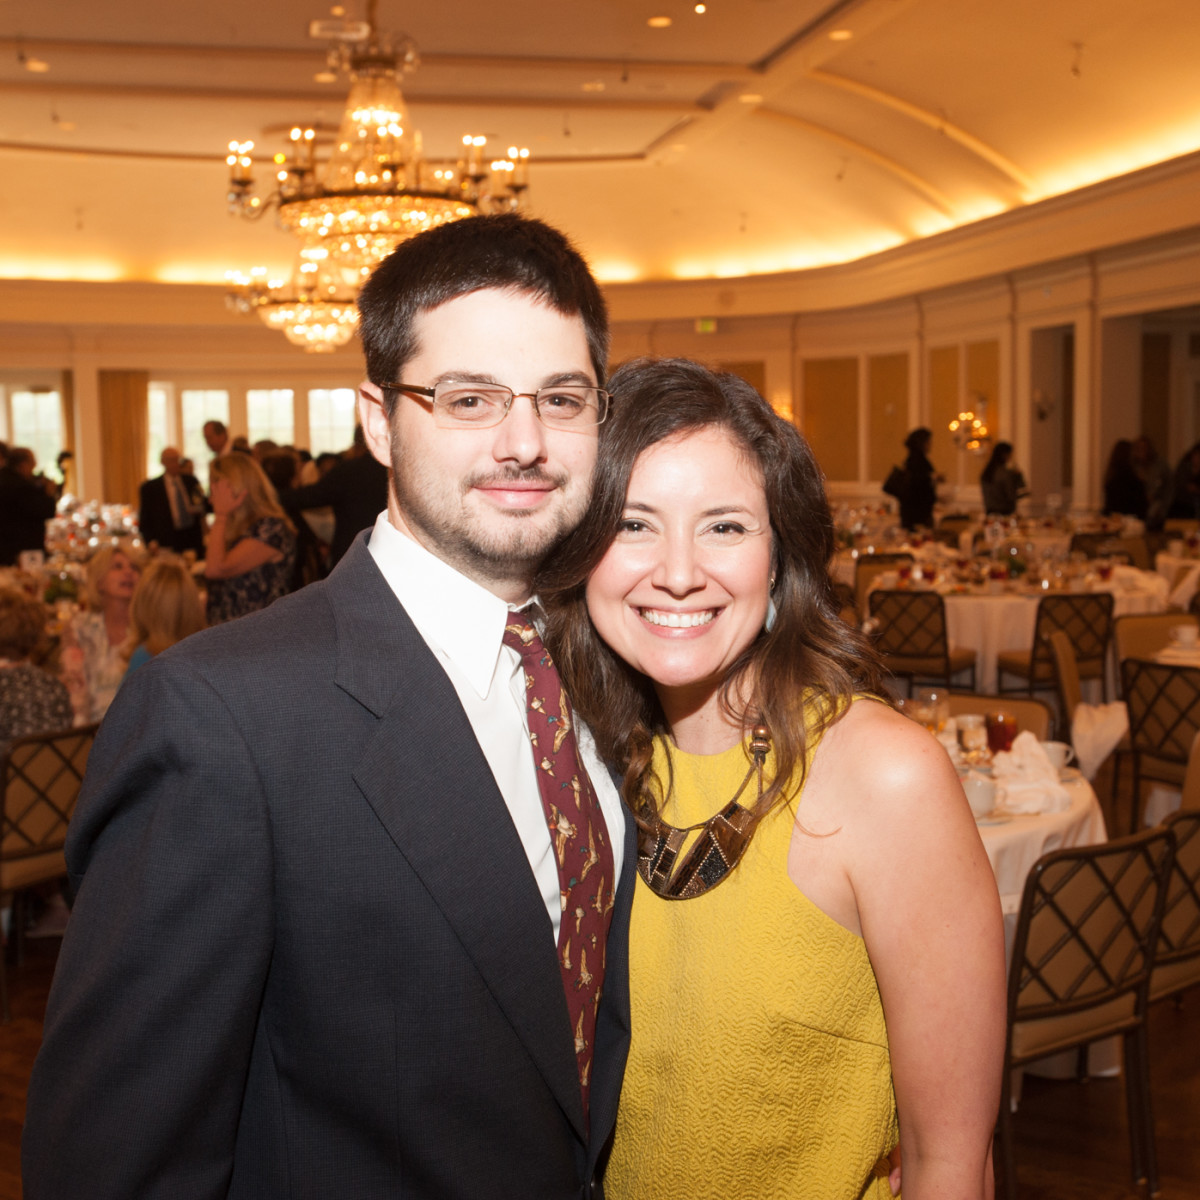 News, shelby, Foundation for Teen Health luncheon, Oct. 2015, Ben Licata, Michaeline Basurtok